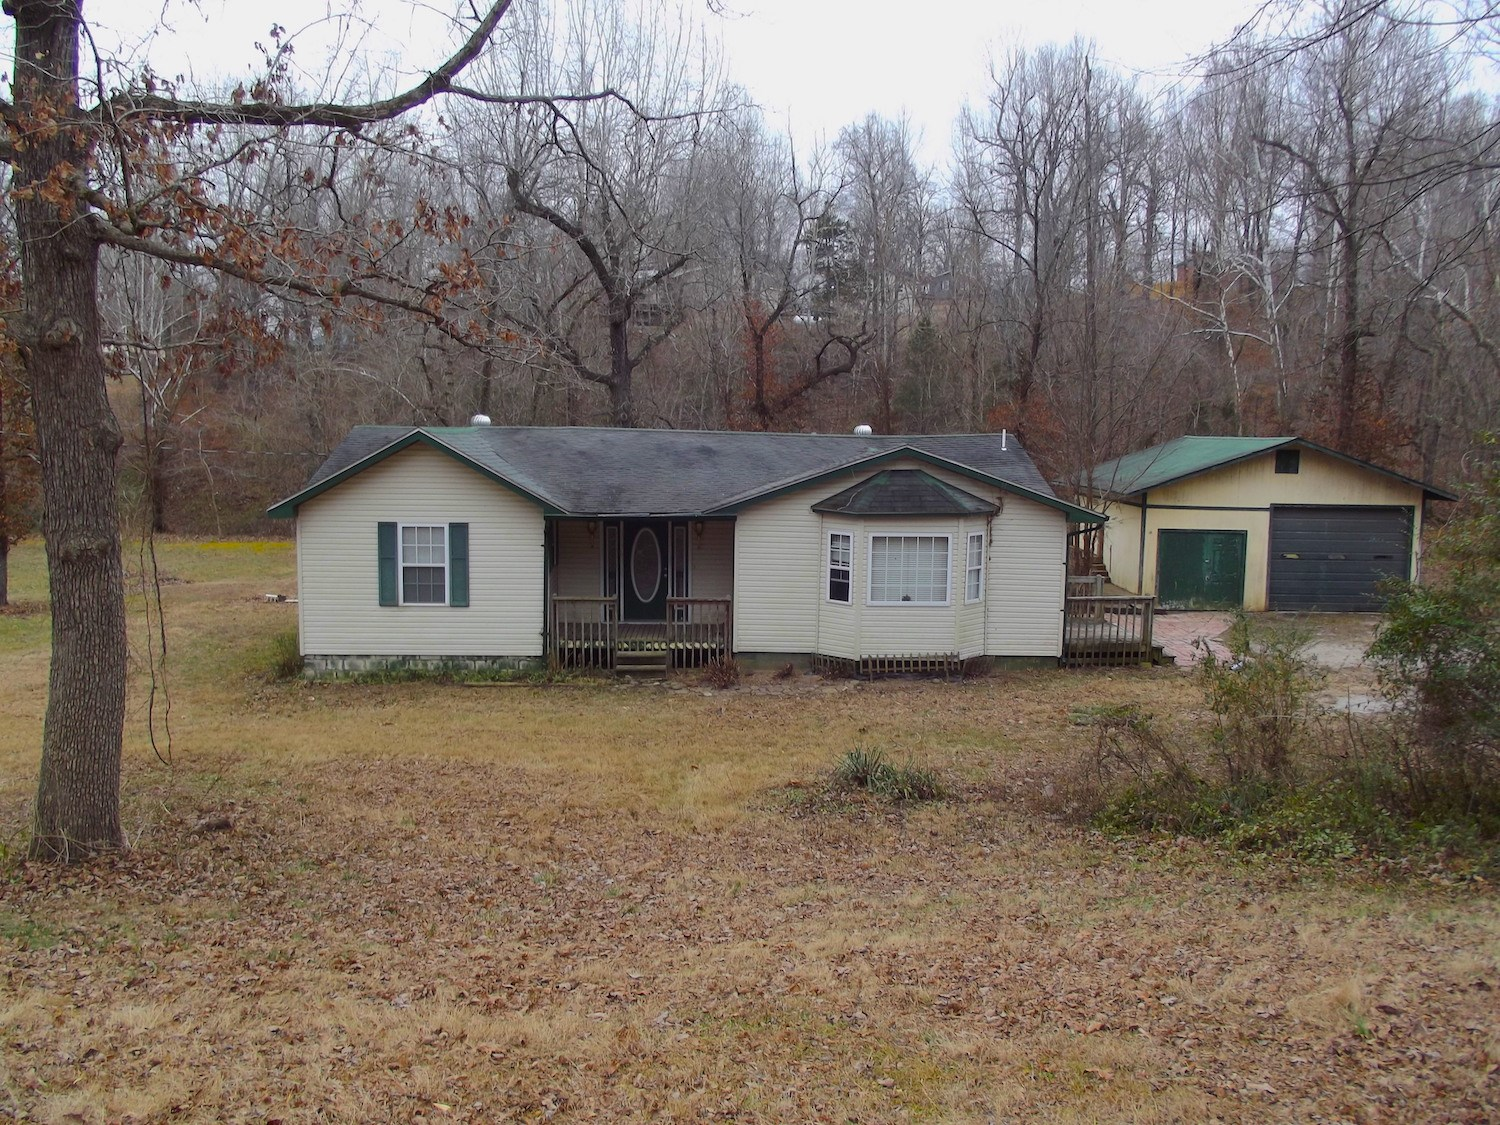 Home for Sale Close to Spring River